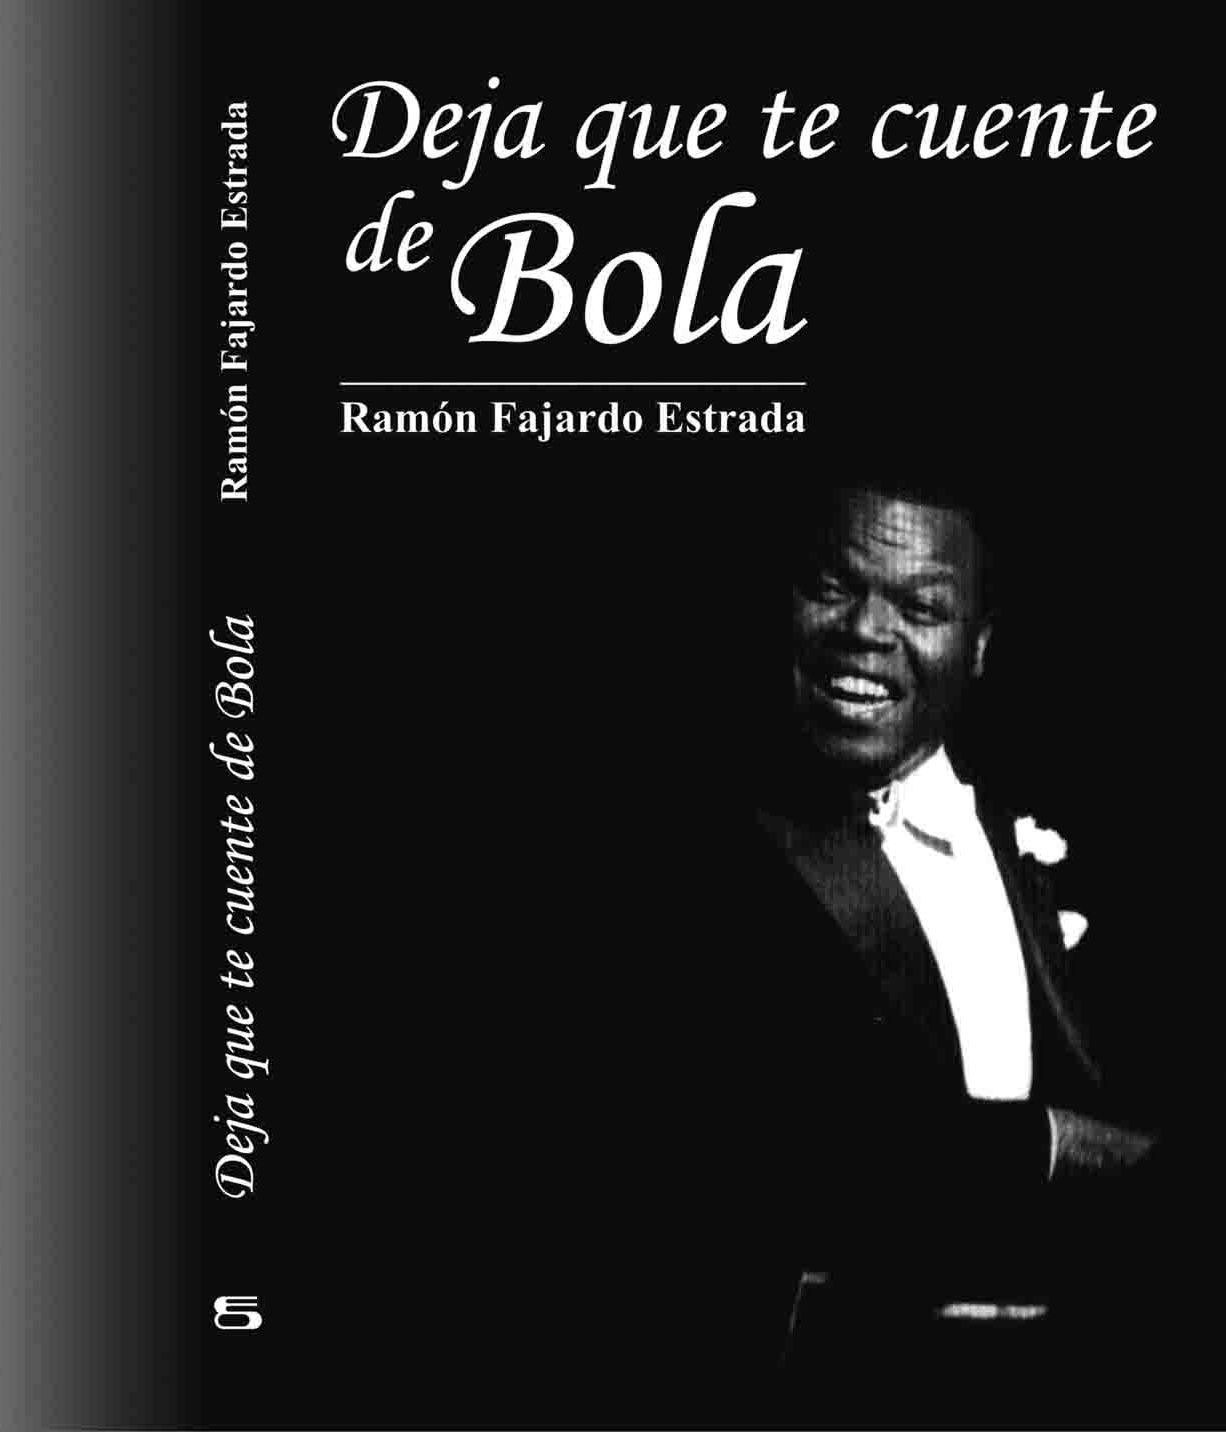 ram n fajardo y su libro dedicado a bola de nieve video cubadebate. Black Bedroom Furniture Sets. Home Design Ideas